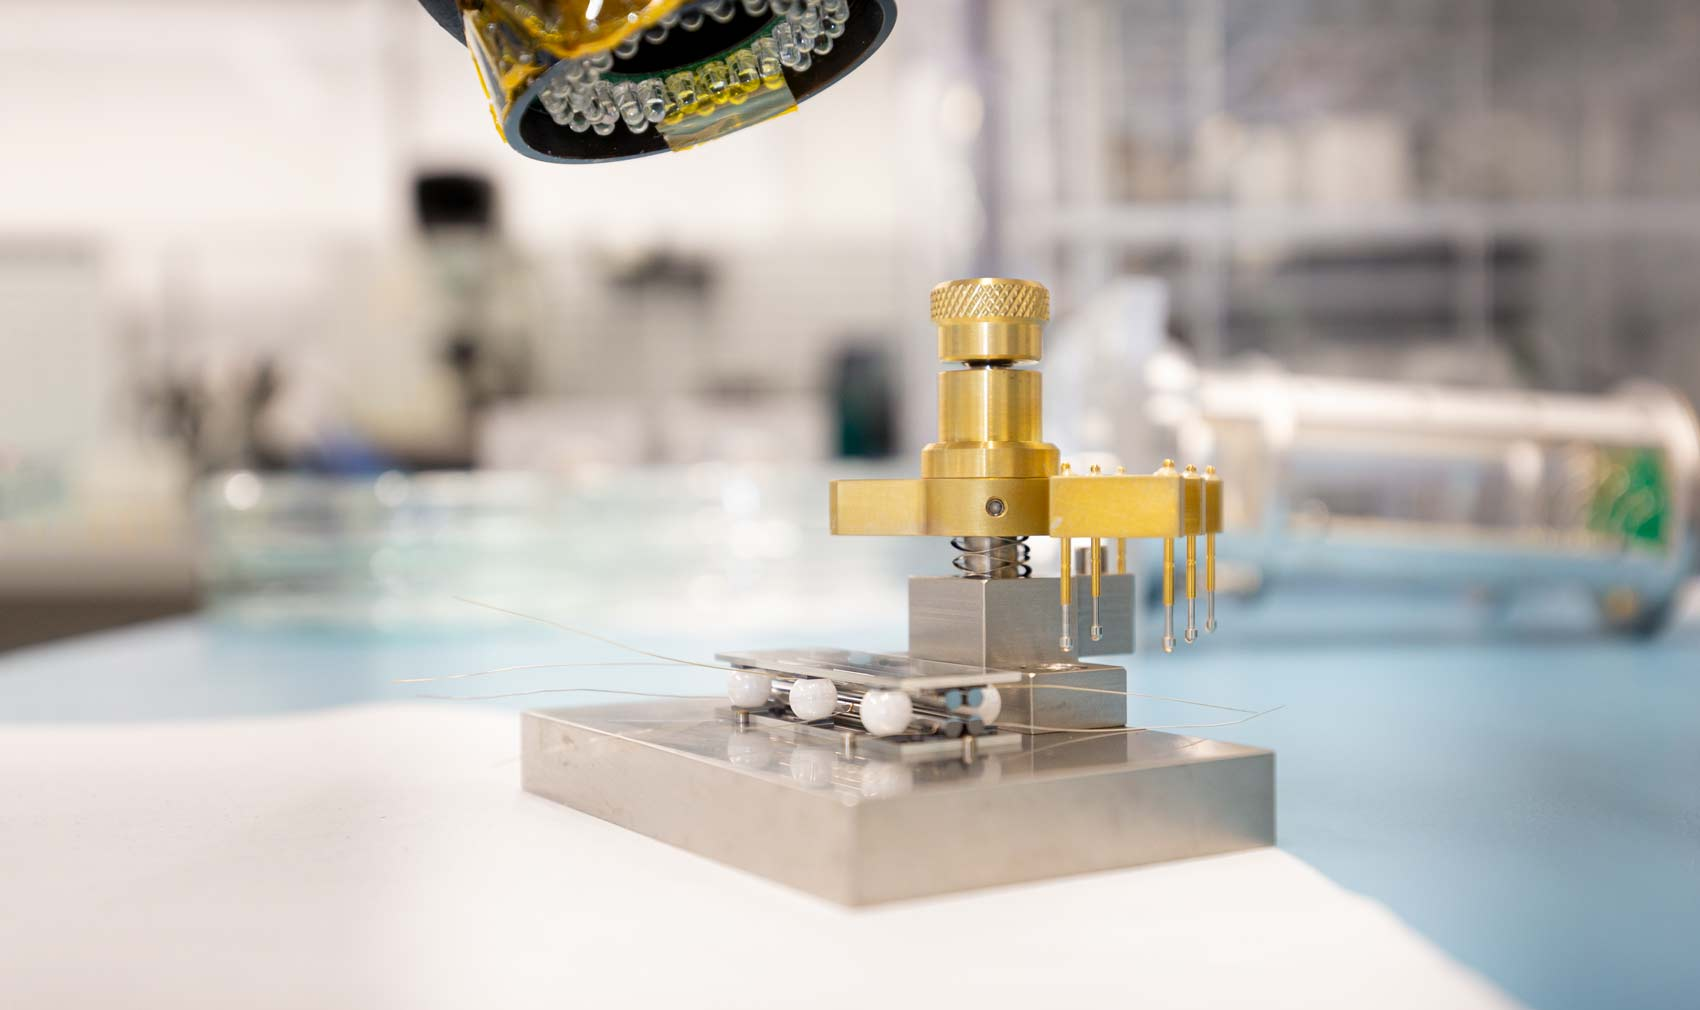 Industrial precision jig for aligning filaments